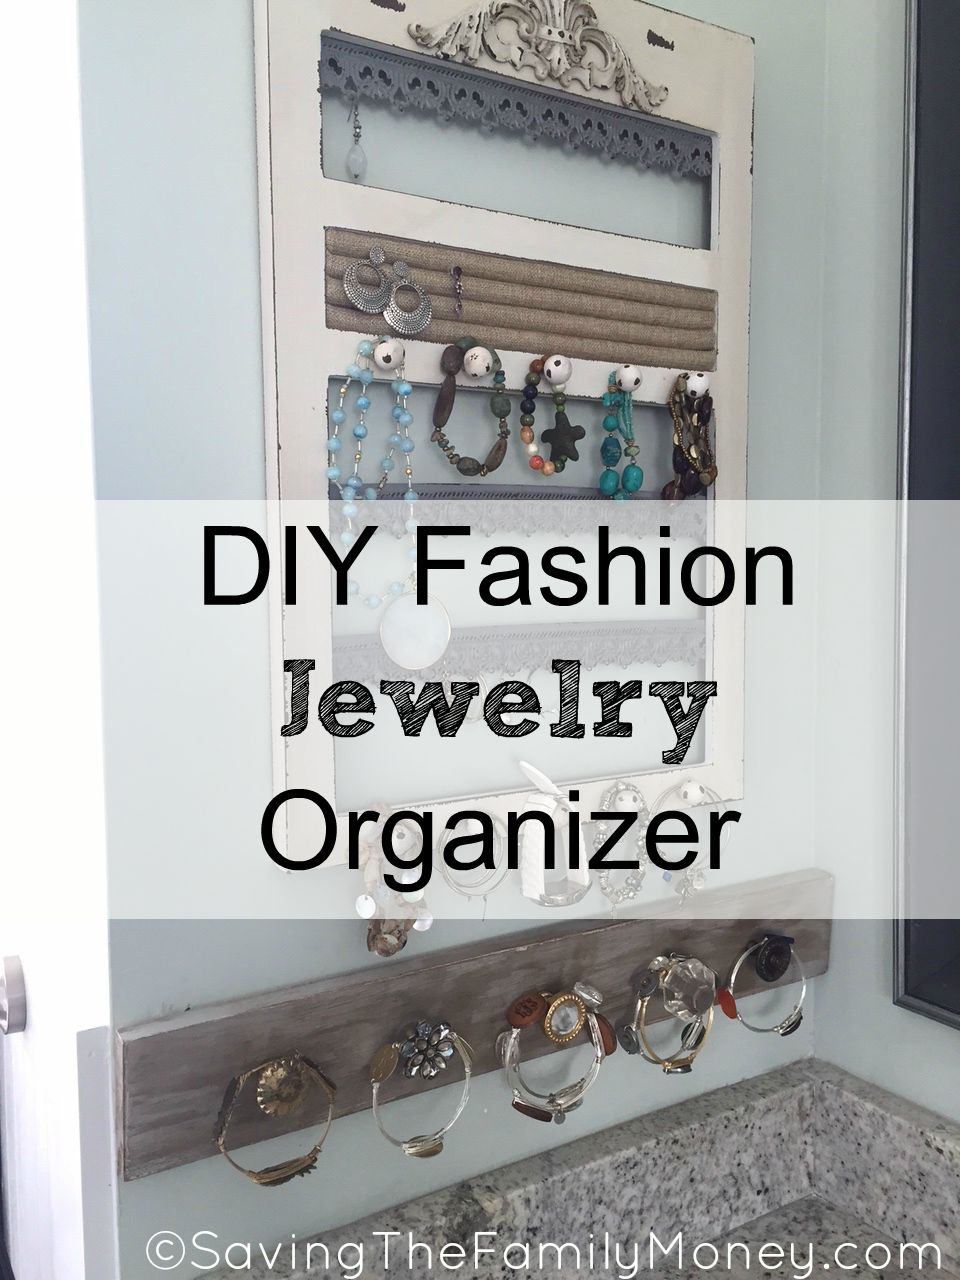 DIY Fashion Jewelry Organizer